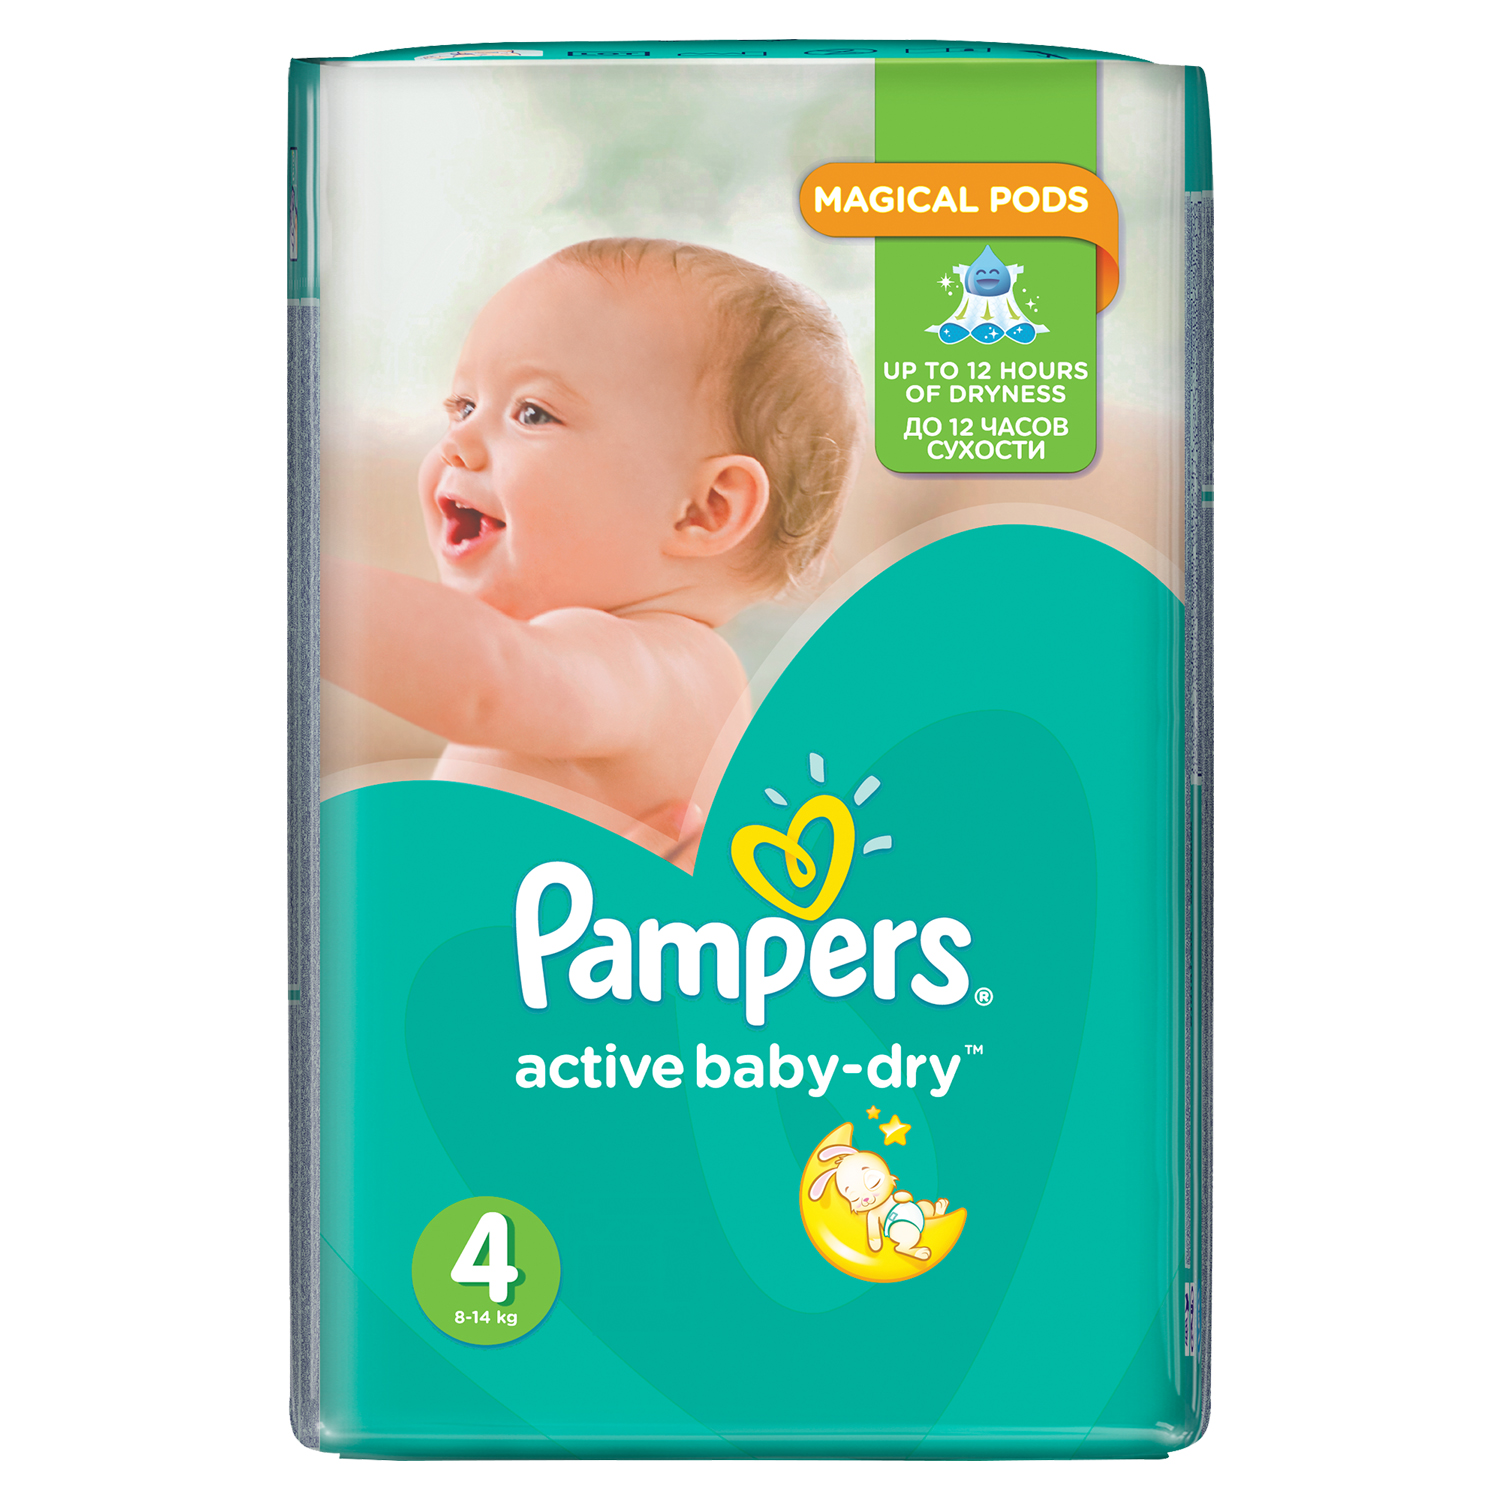 Пелени Pampers Active Baby BOX 4, 8-14 кг, 174 броя